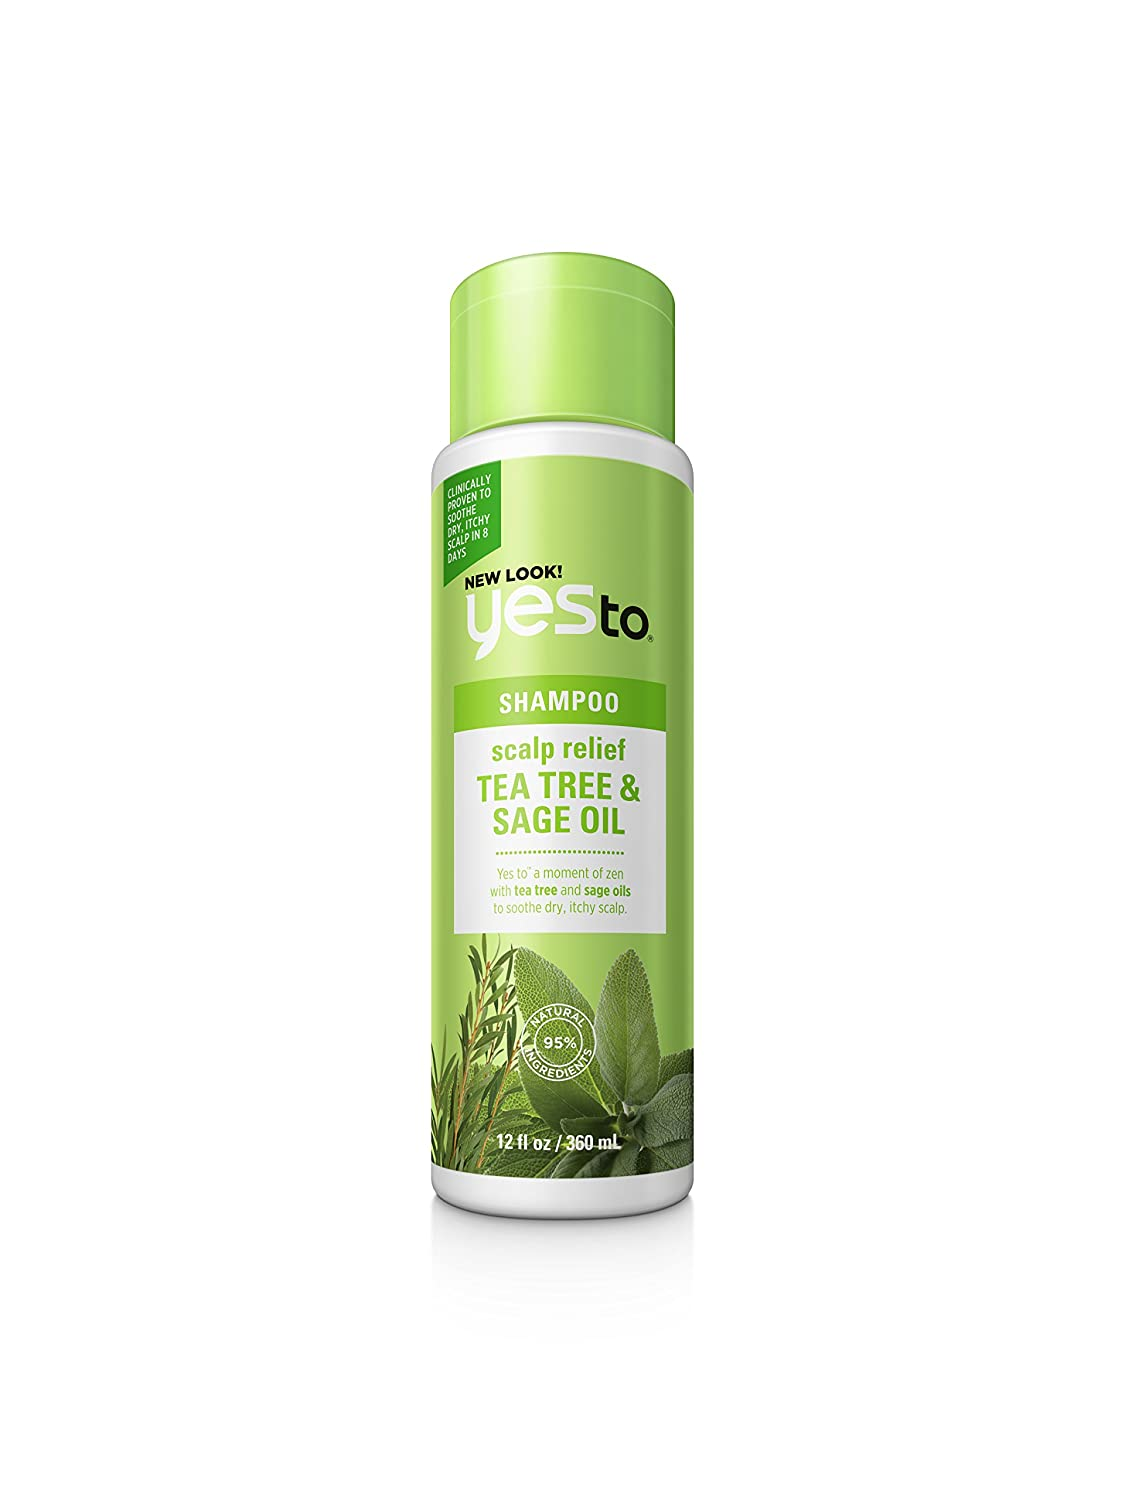 Yes To Naturals Tea Tree & Sage Oil Scalp Relief Shampoo for Dry & Itchy Scalp, 12 Fluid Ounce